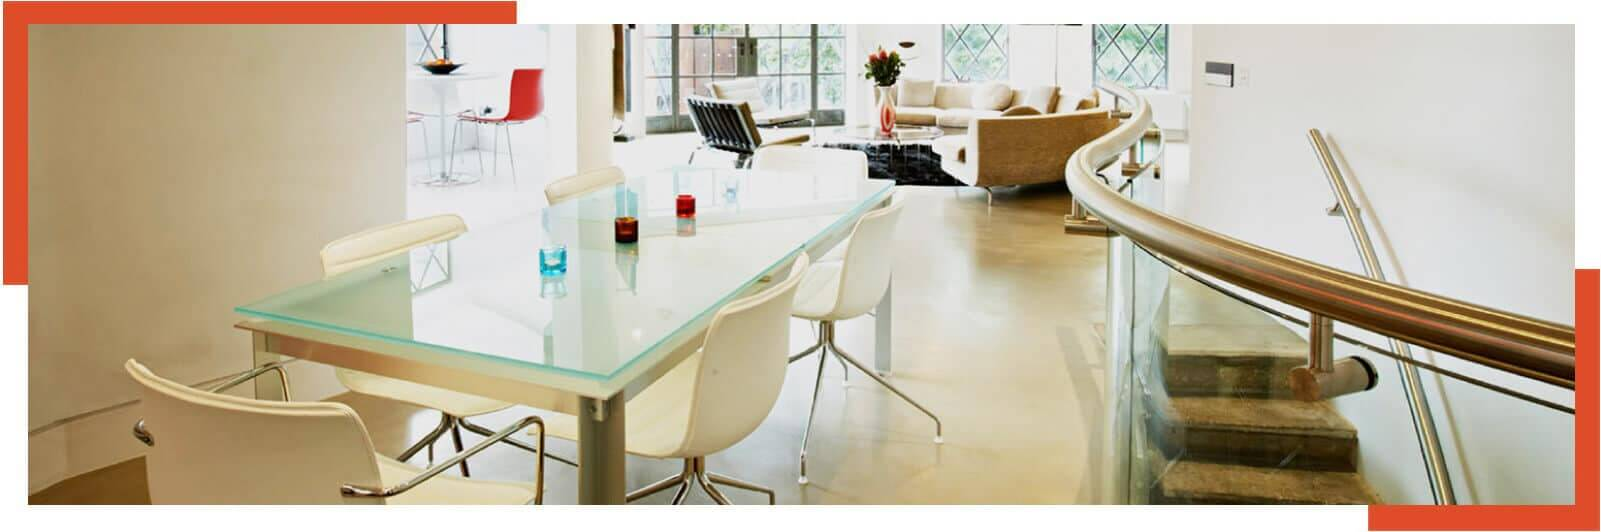 Toughened Safety Glass Table Cardiff